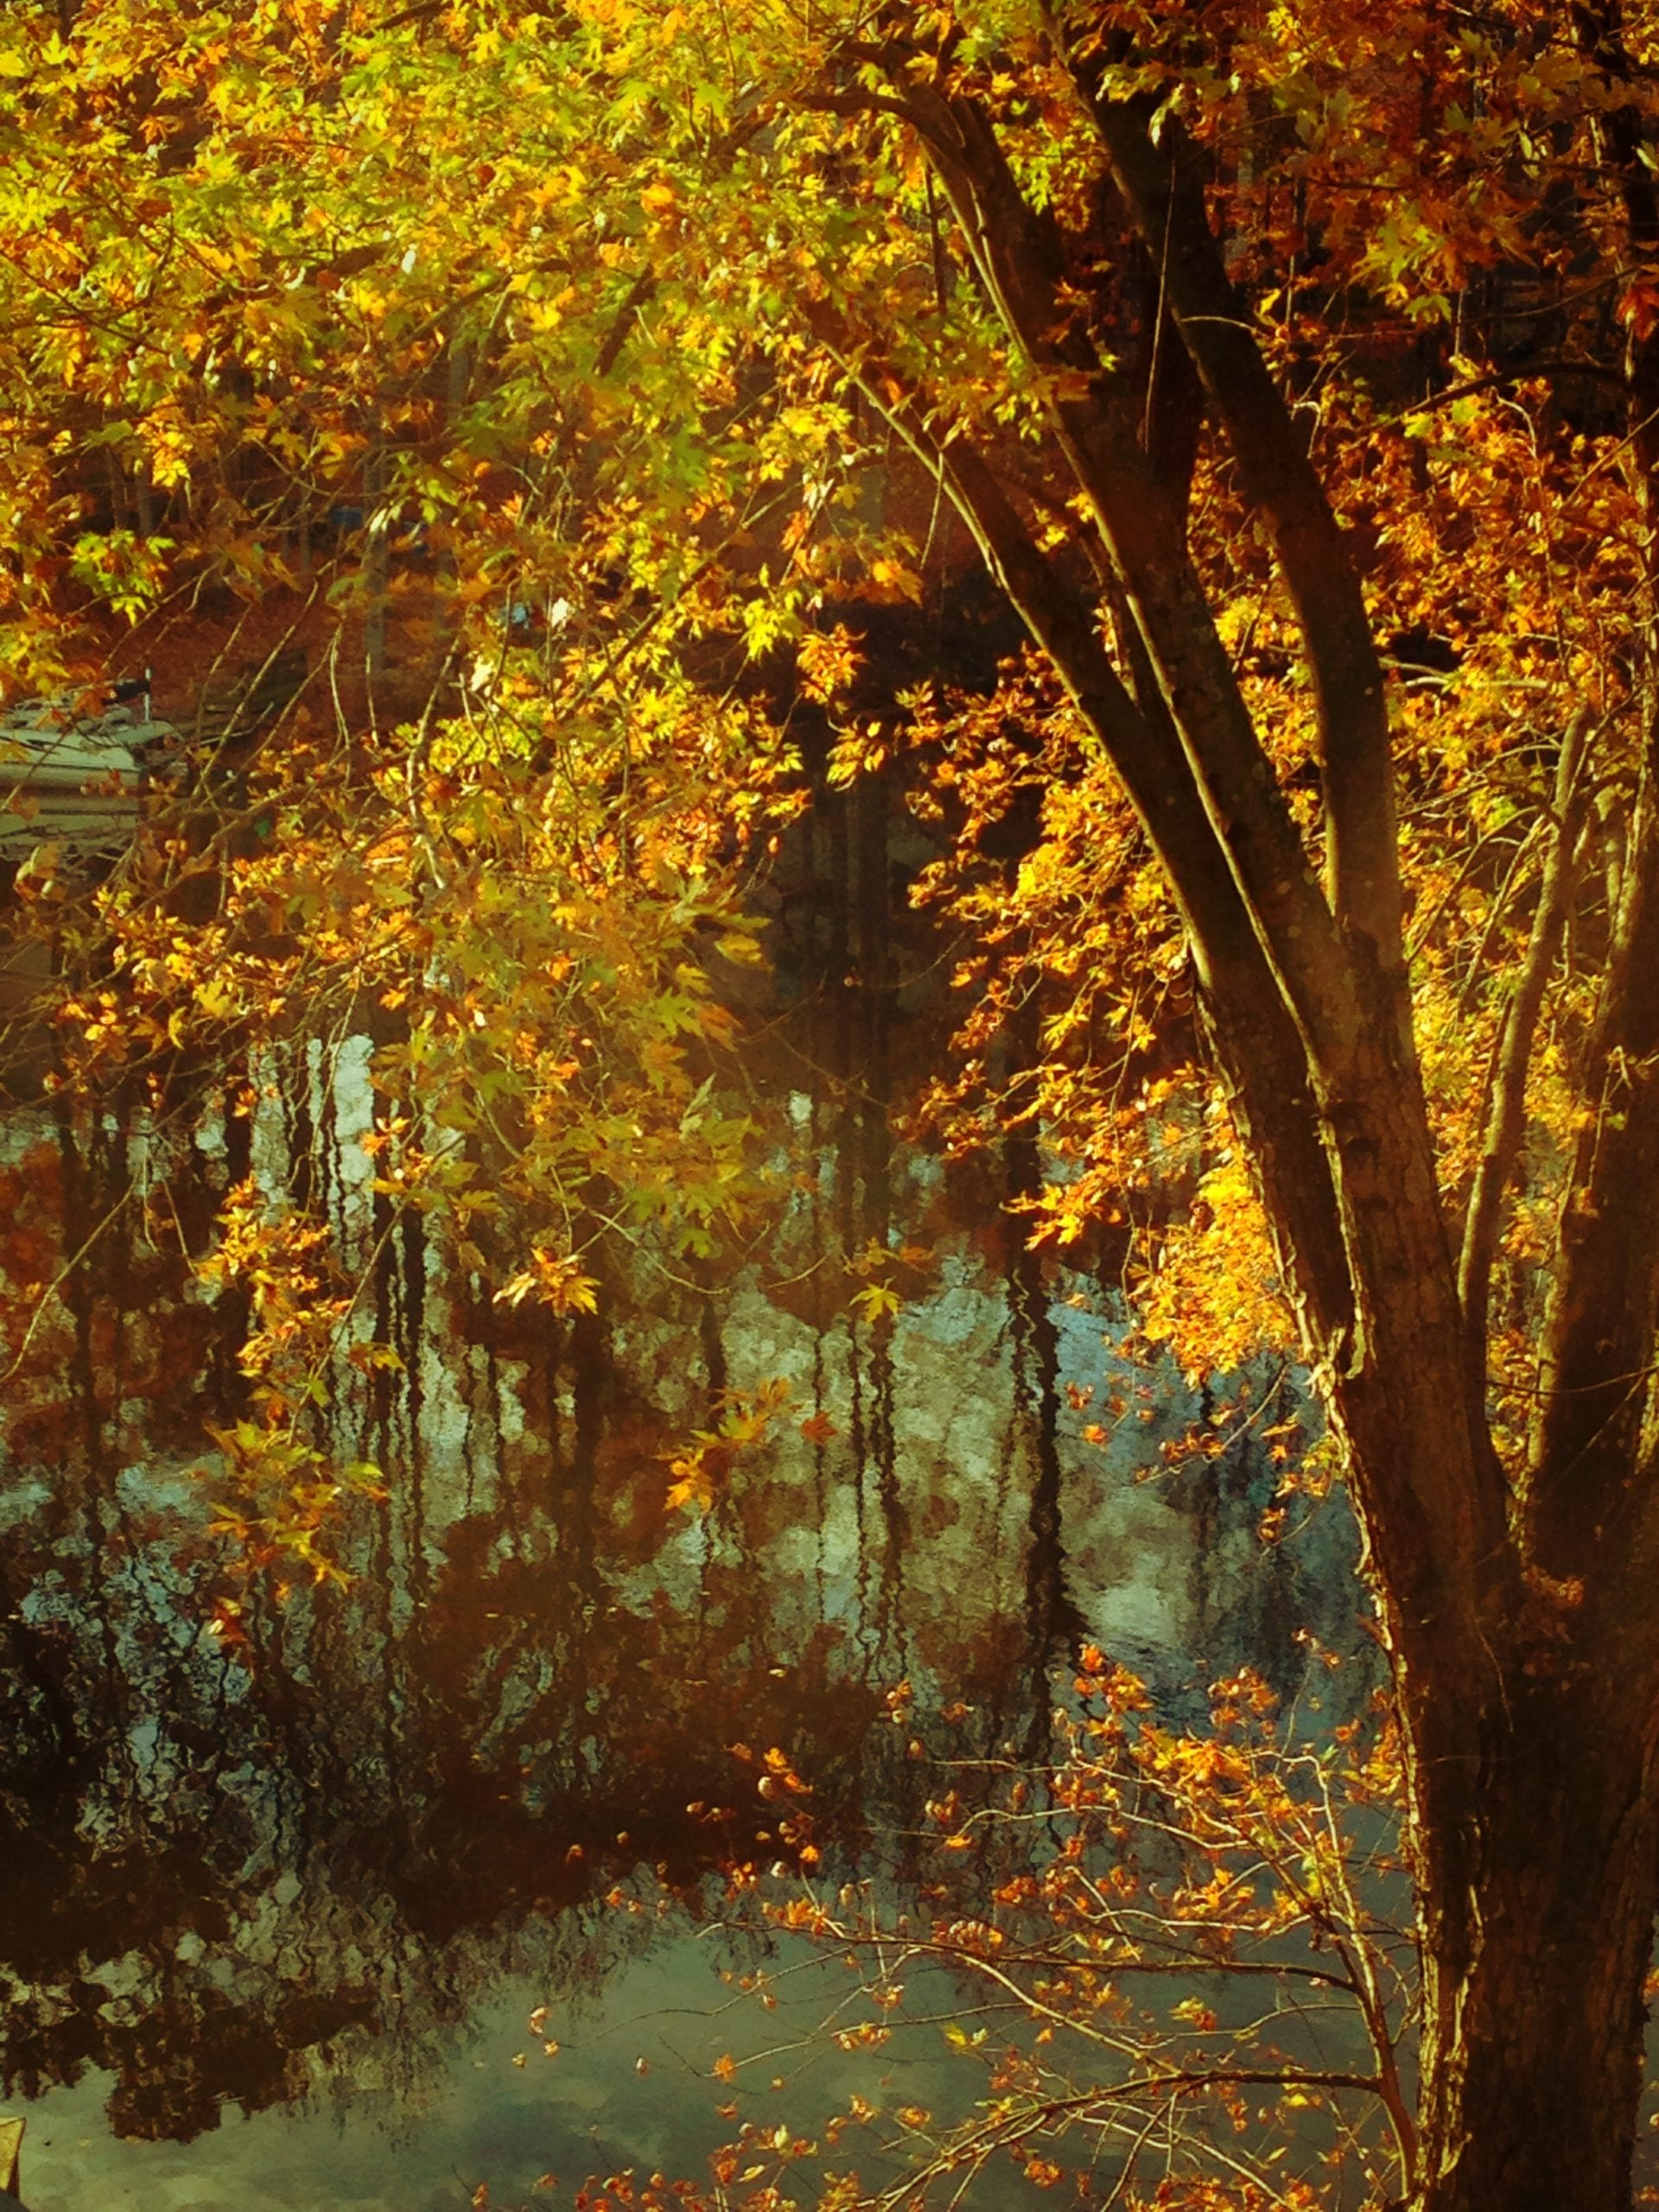 The Wonder of Autumn: Embracing God's Glory-Gift of Fall